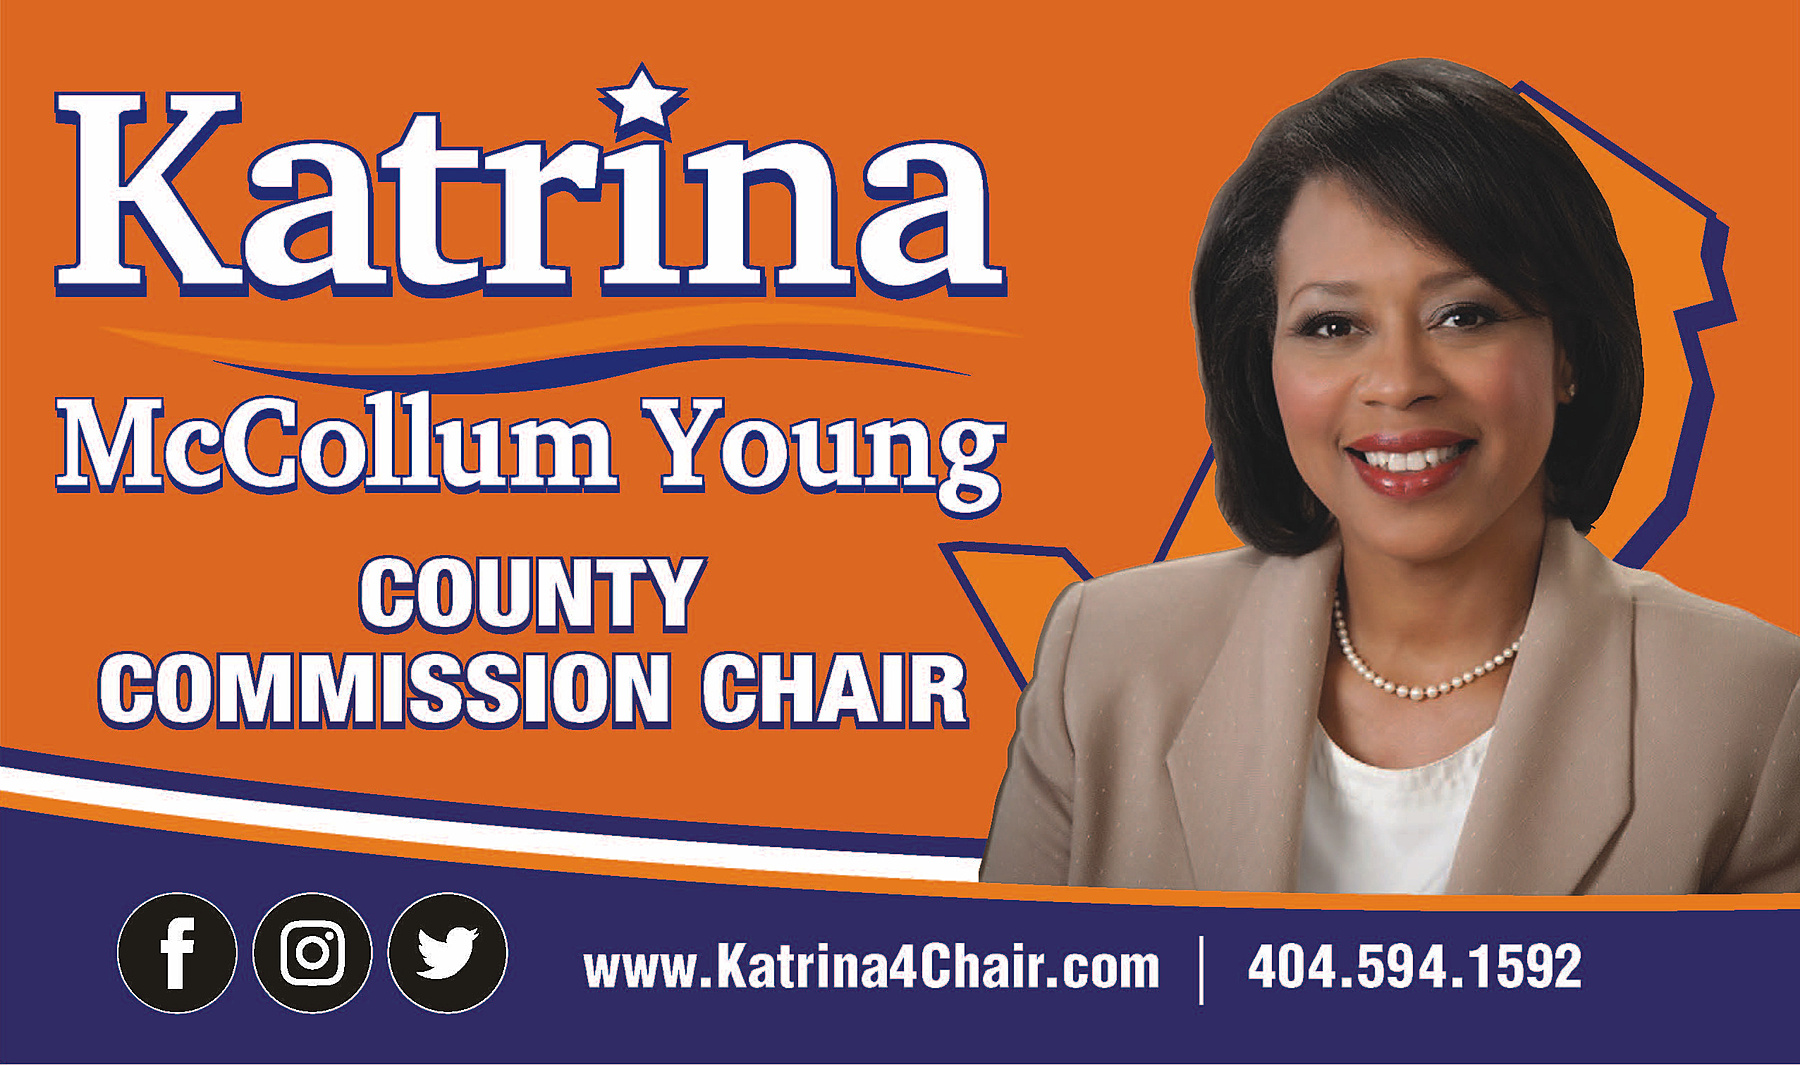 Katrina for Chair: Katrina for BOC Chair